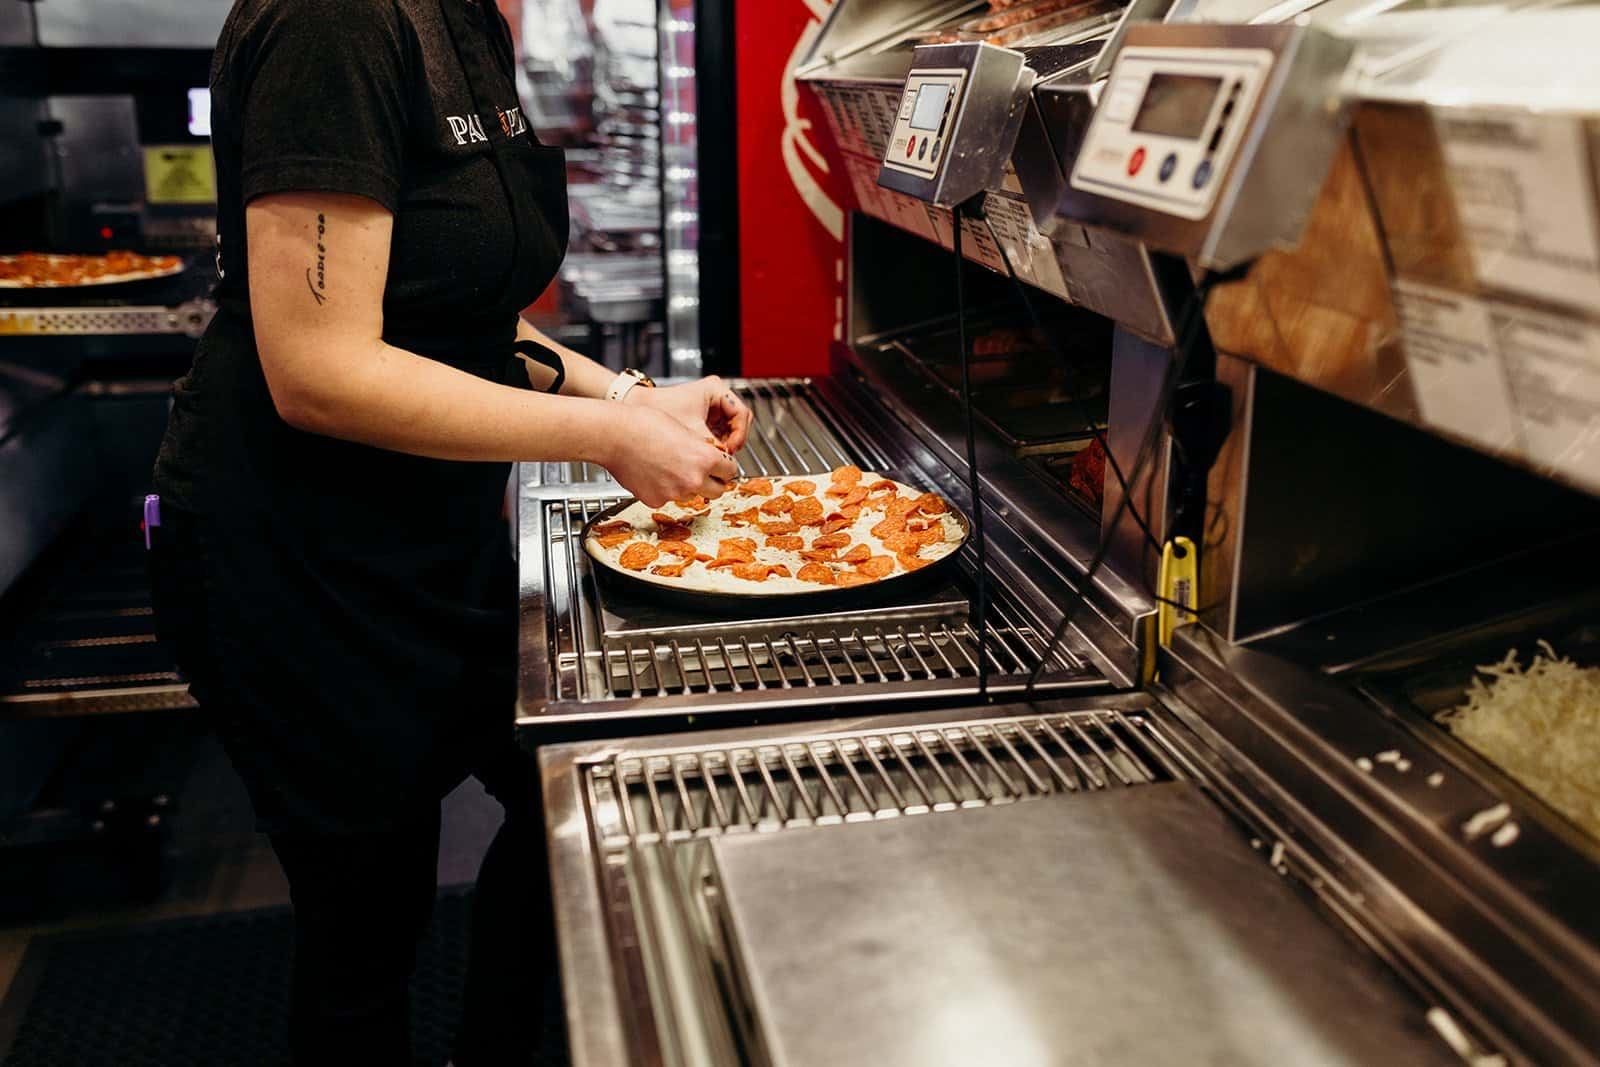 Park Street Pizza / Commercial Shoot 302